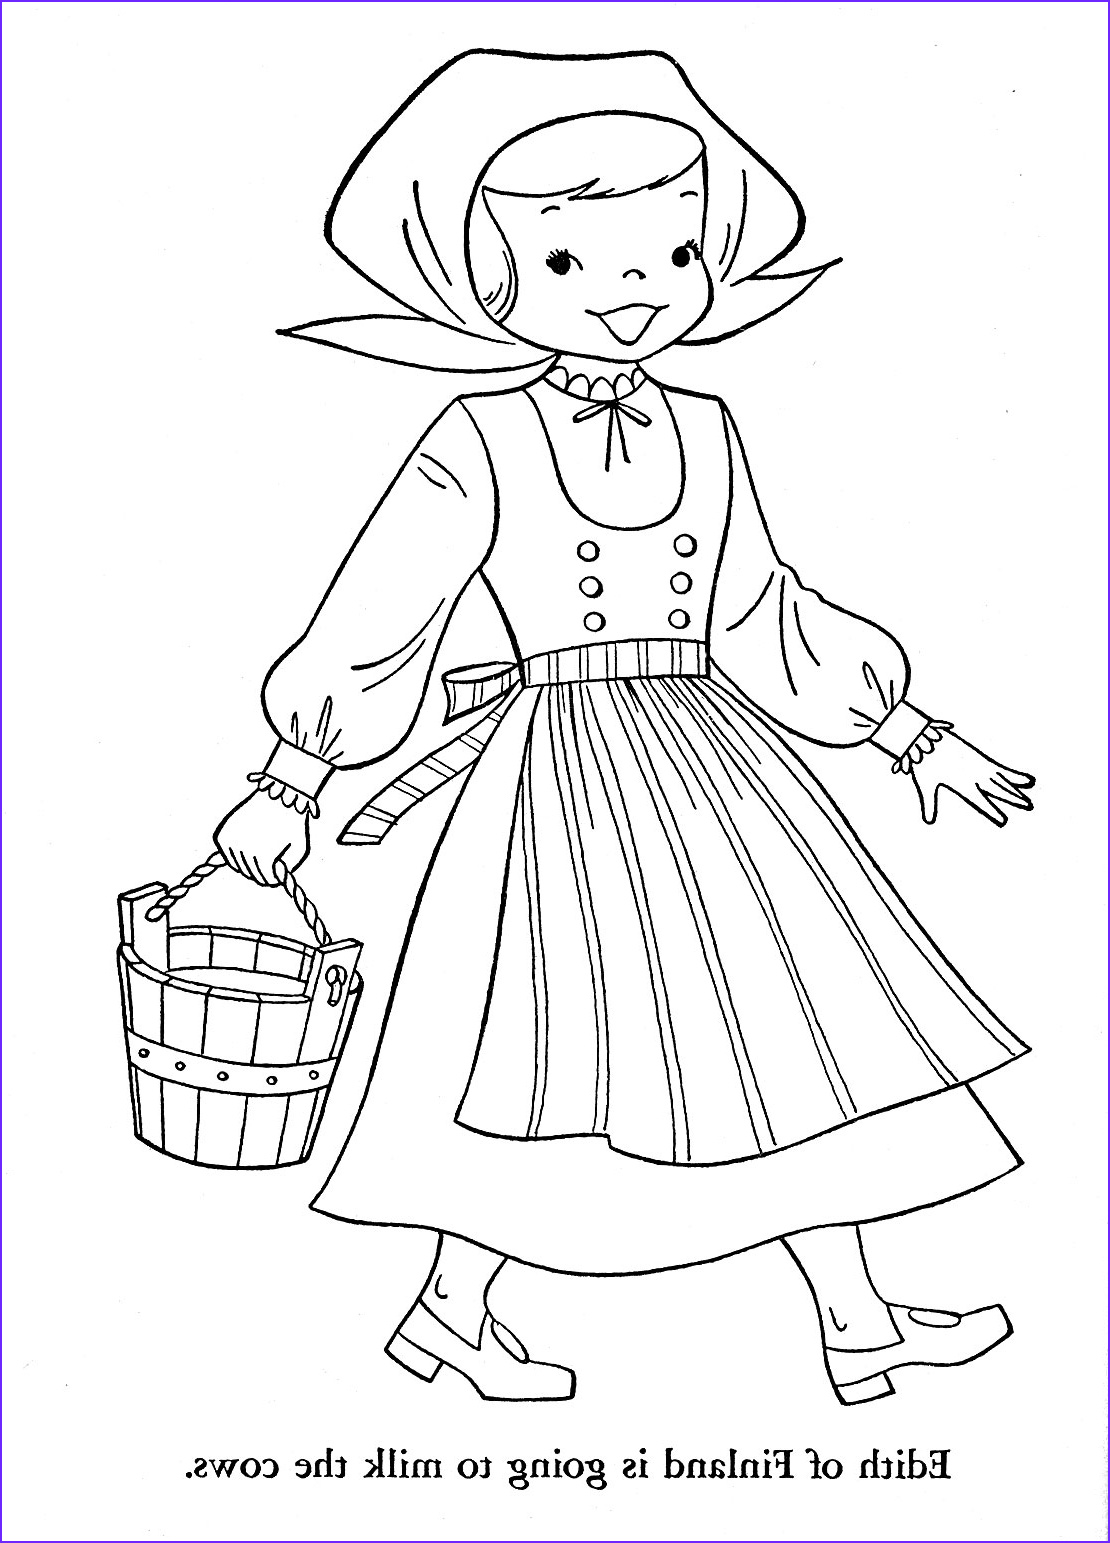 Childrens Coloring Pages Cool Collection Children Of Other Lands 1954 – Belgium Spain Portugal